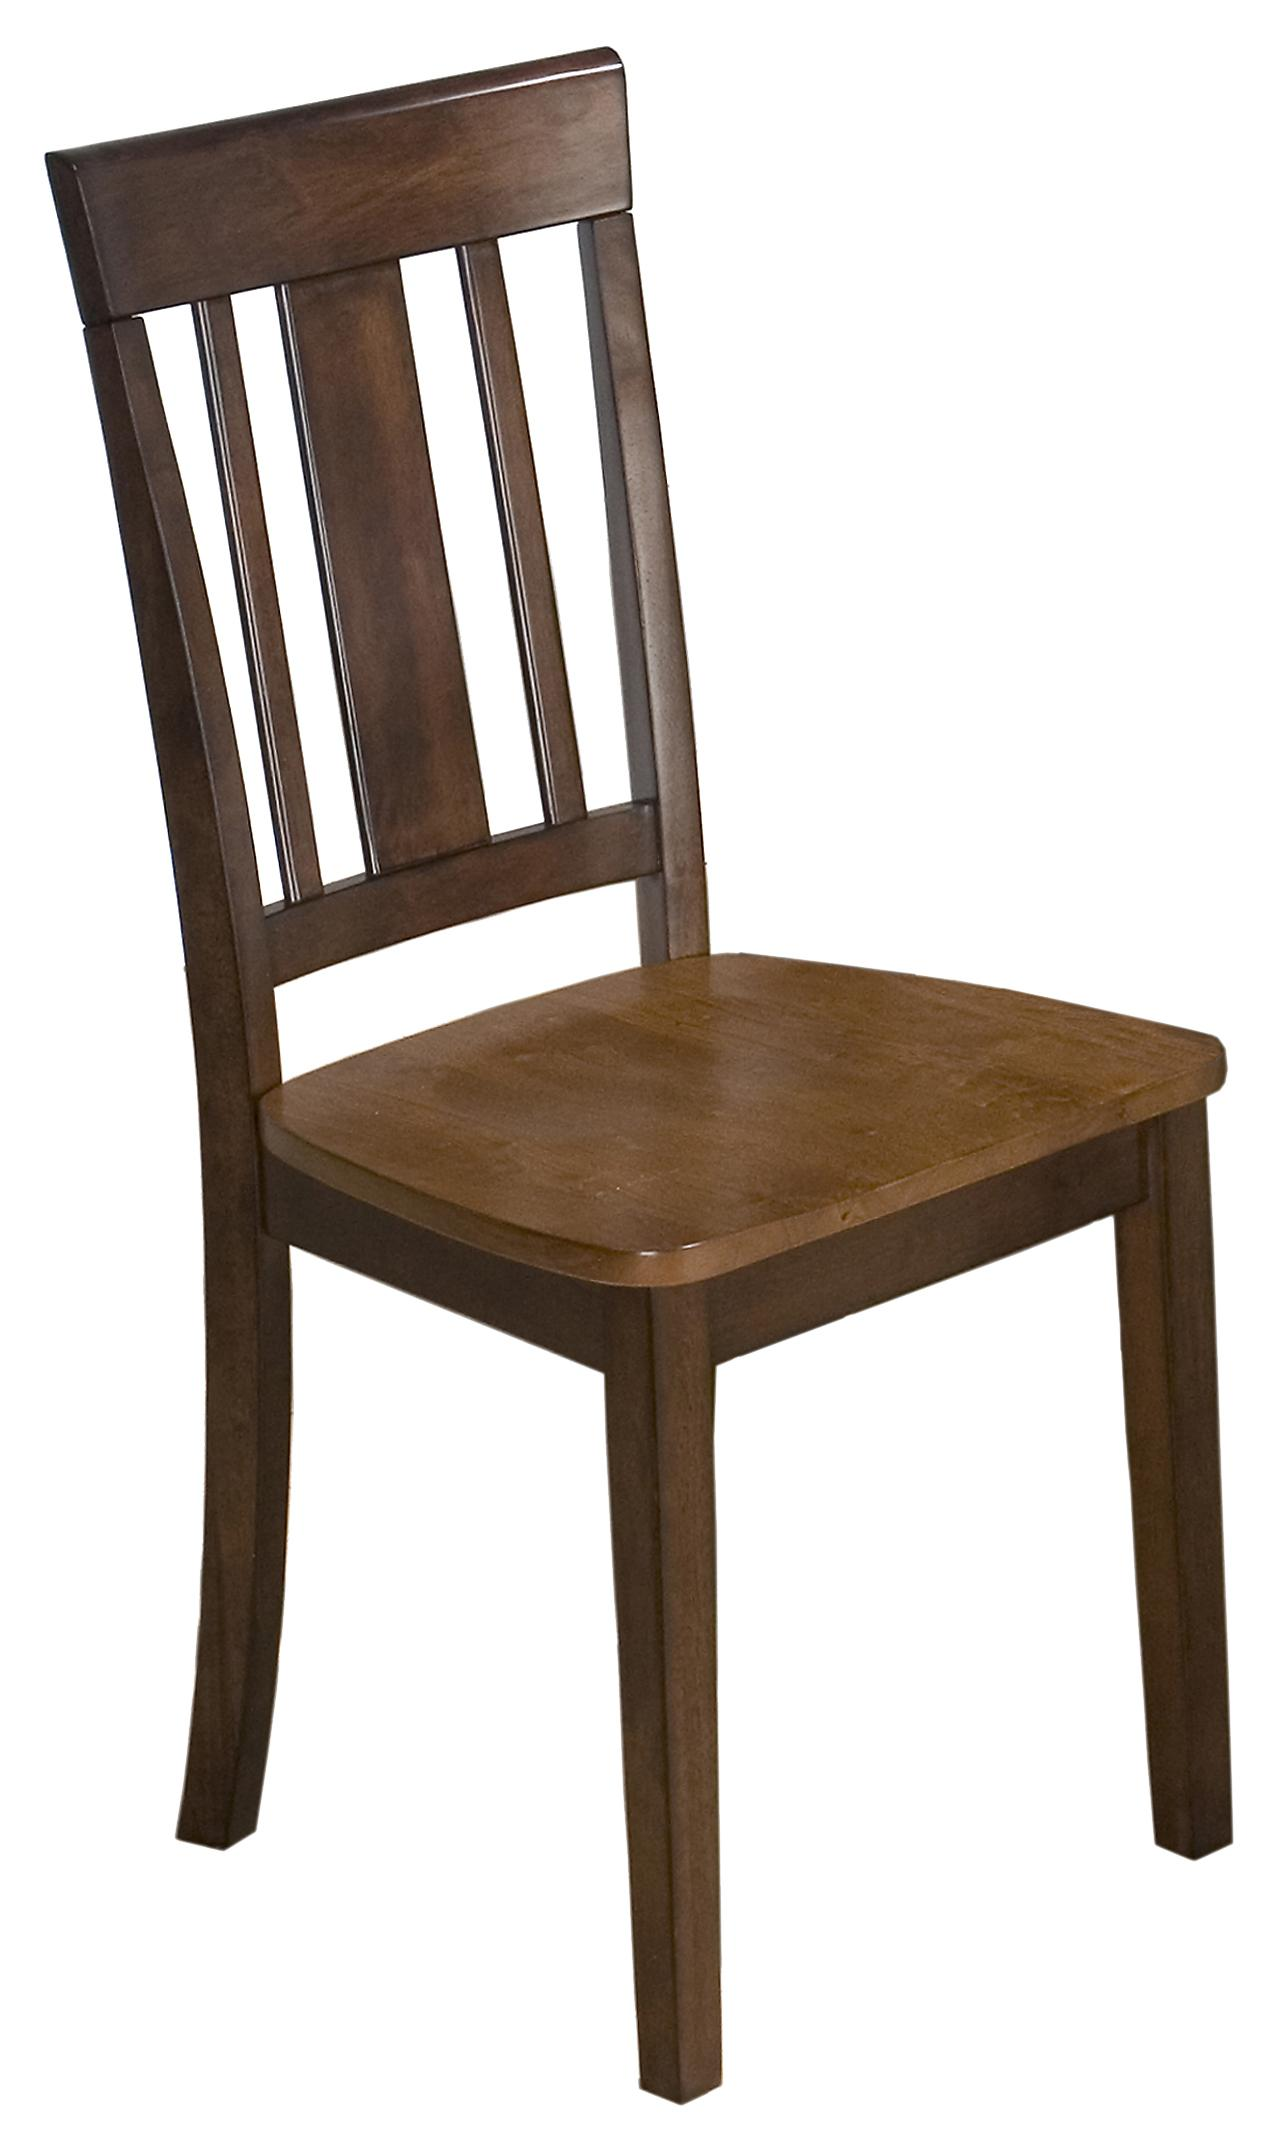 Triple Upright Chair